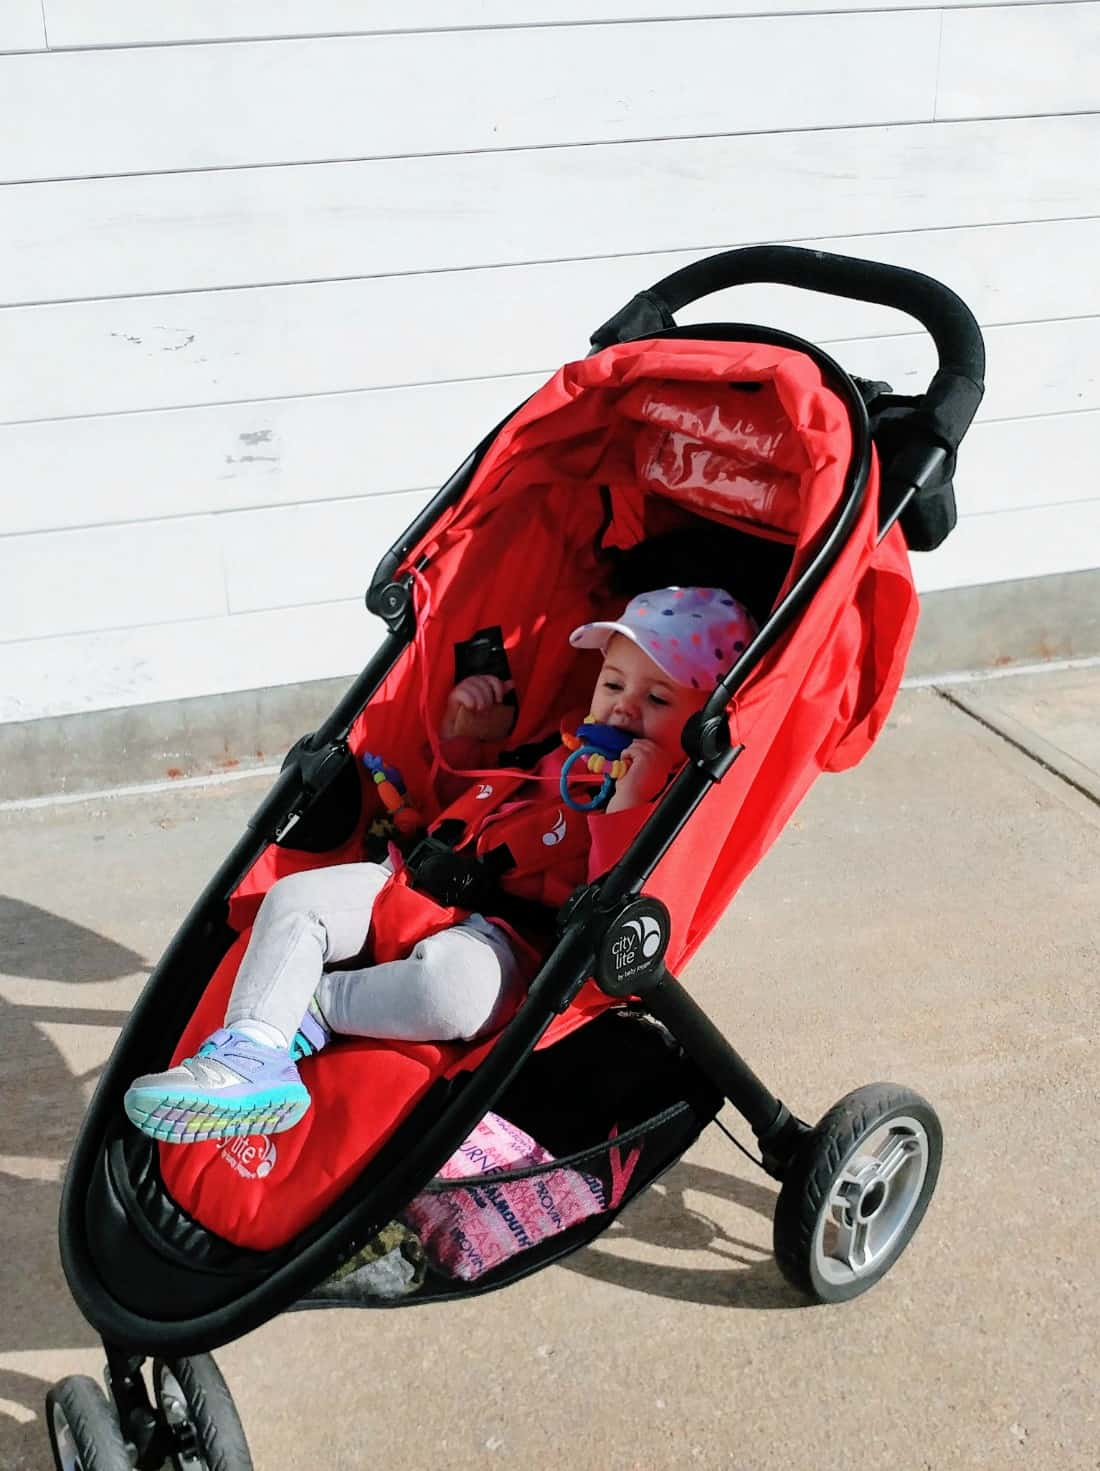 Baby girl plays in red stroller.